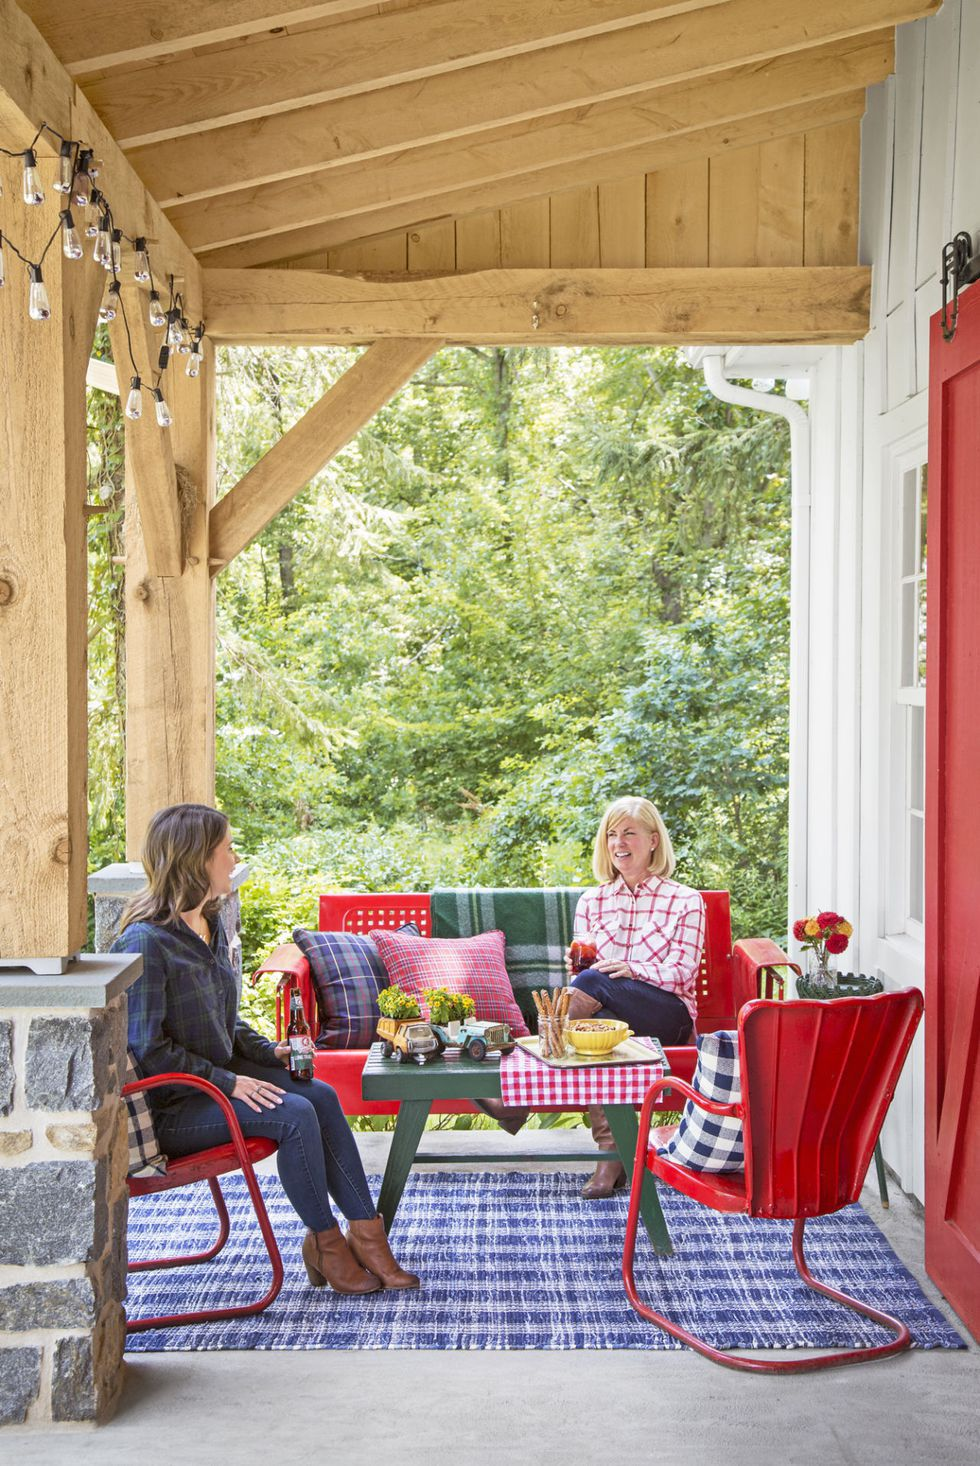 76 Best Patio Designs for 2019 - Ideas for Front Porch and Patio